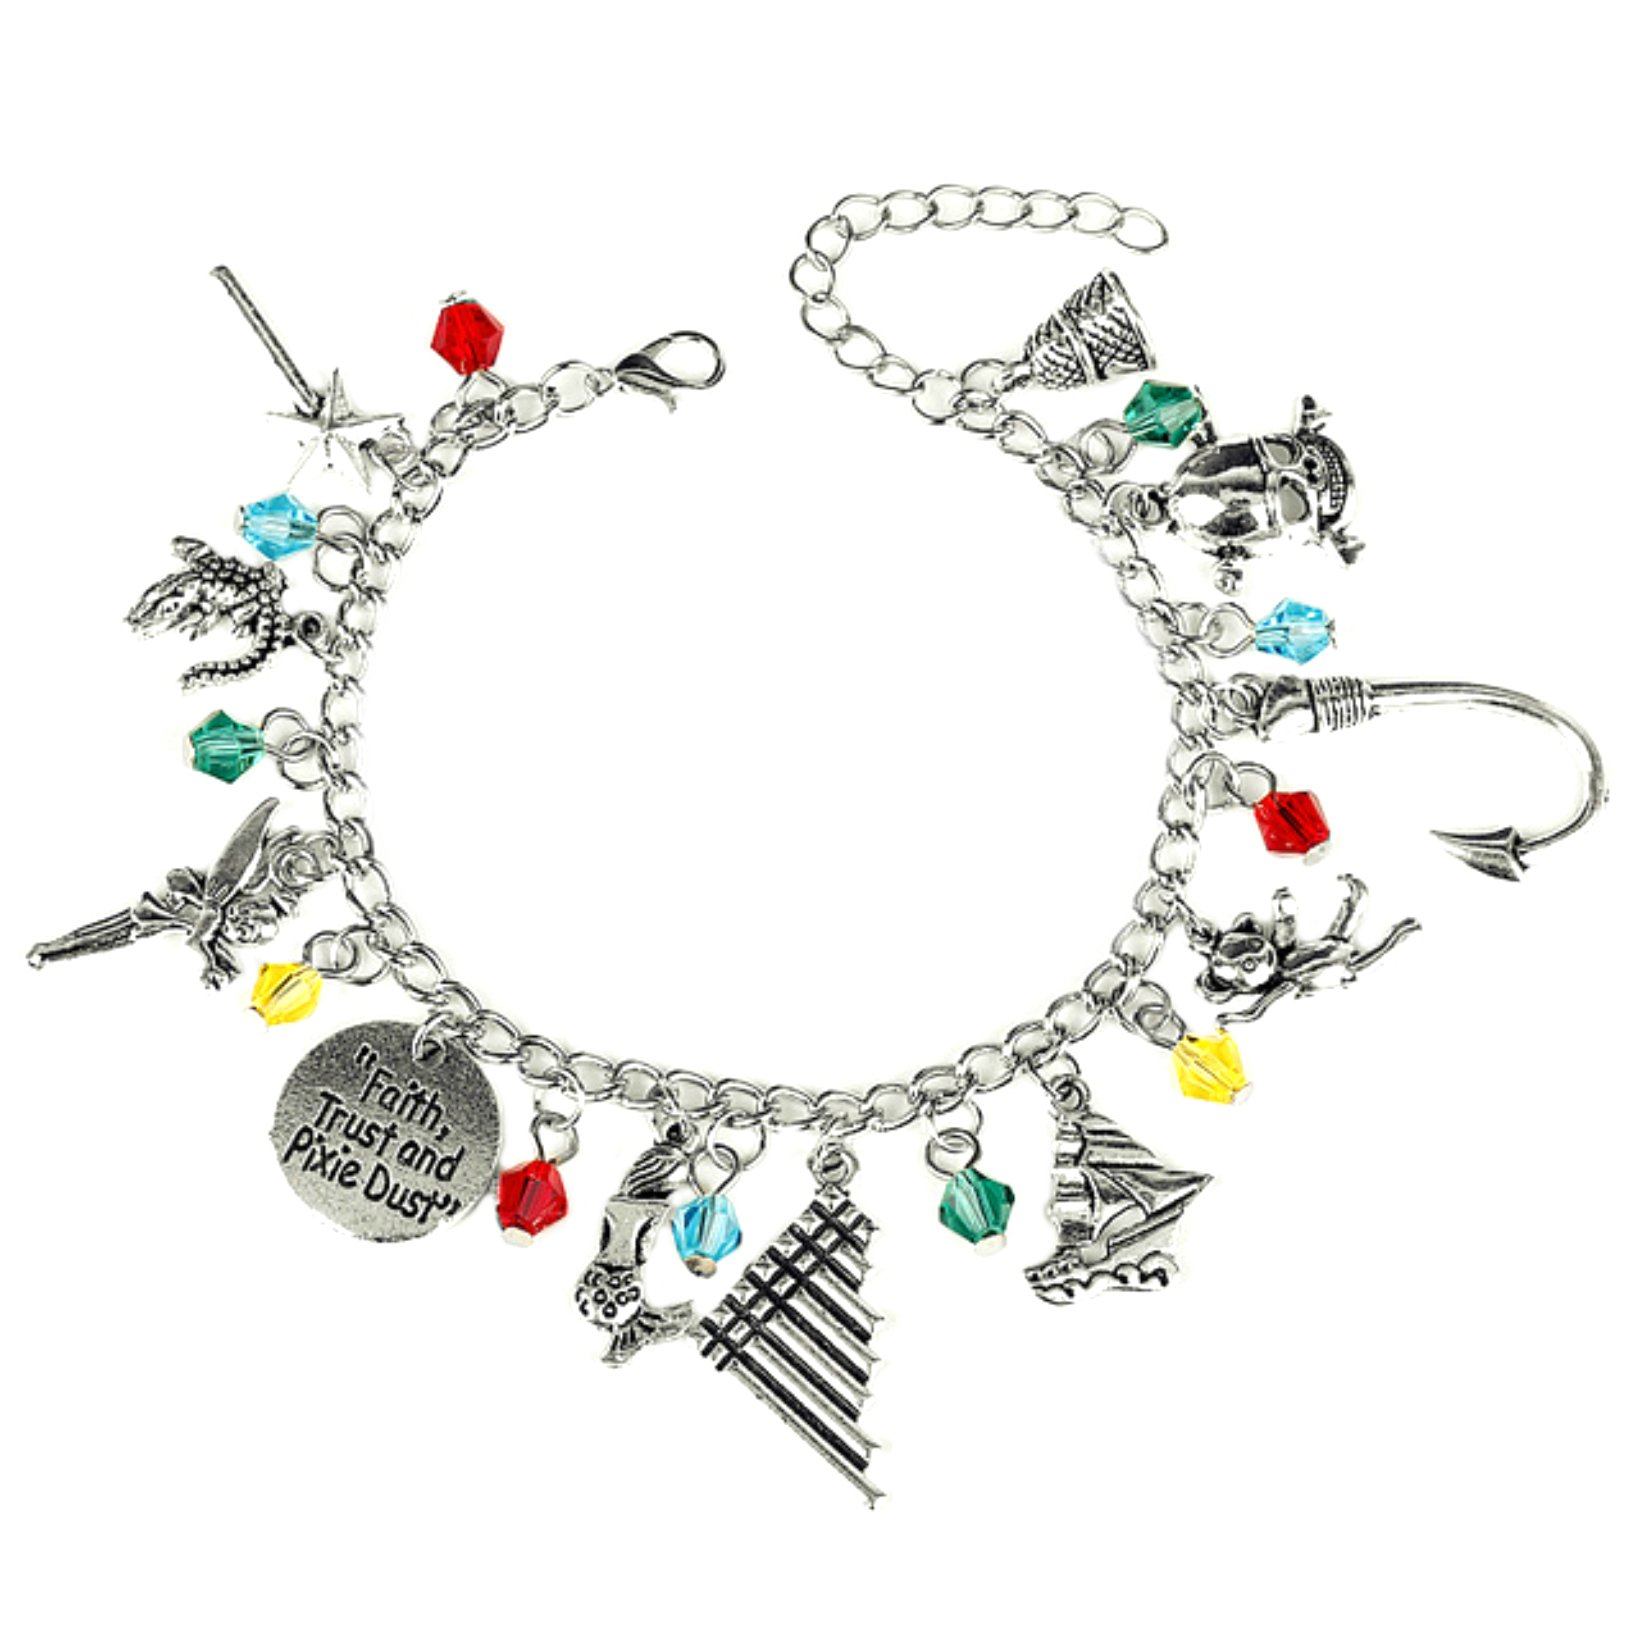 US FAMILY Peter Pan Movie Theme Multi Charms Jewelry Bracelets Charm by Family Brands by US FAMILY (Image #2)